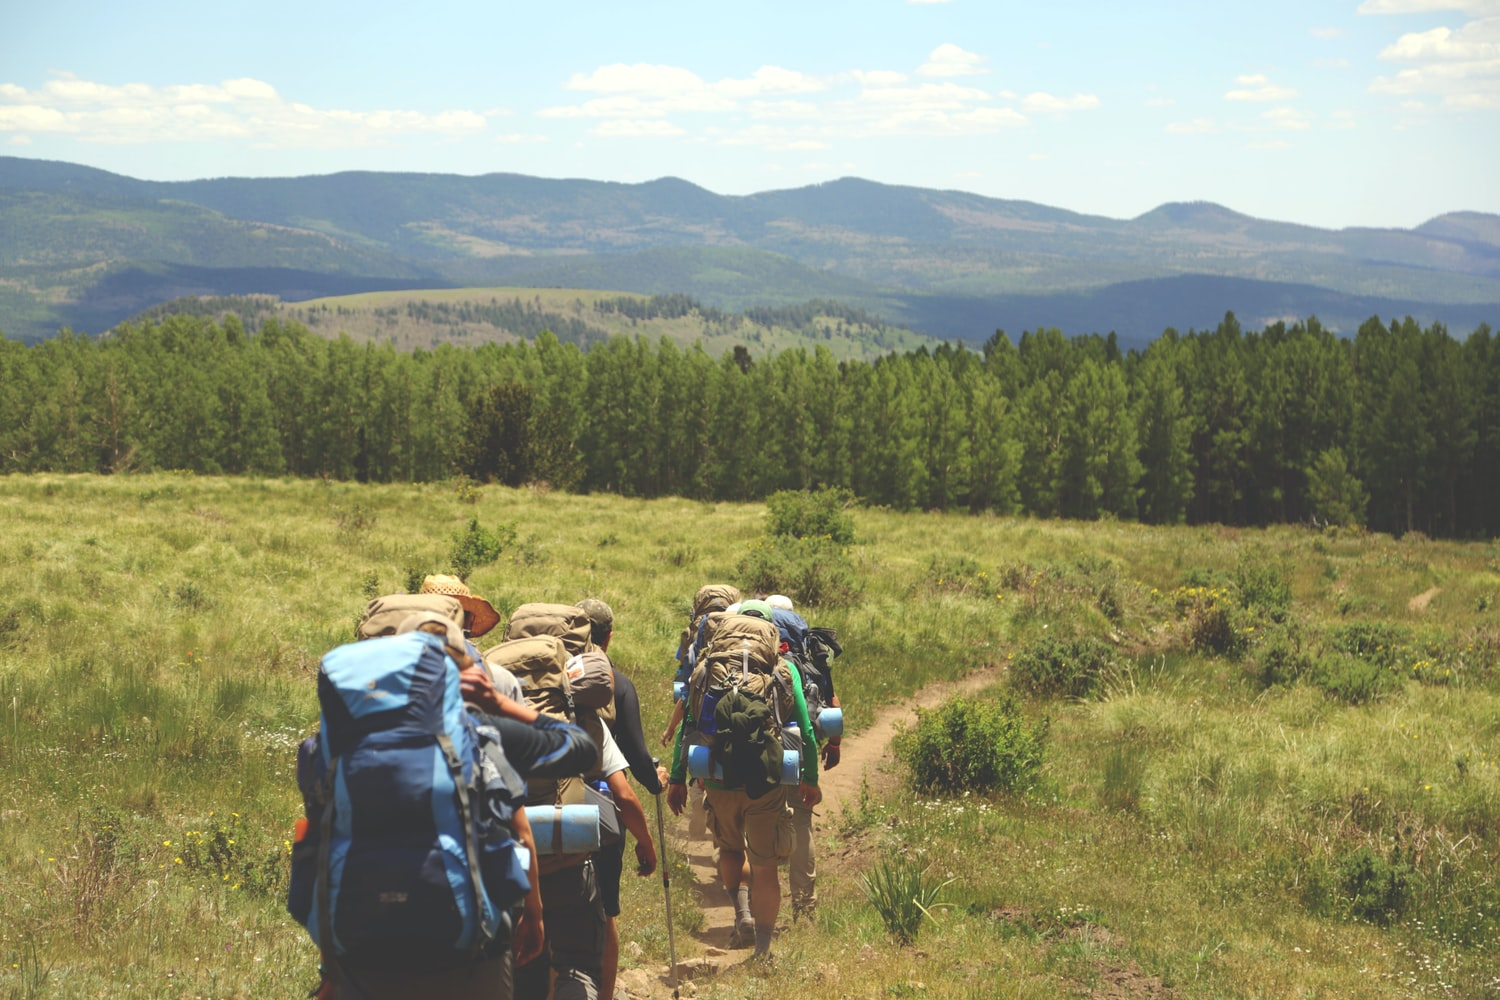 Group of hikers are walking the mountain trail while wearing their hiking gears